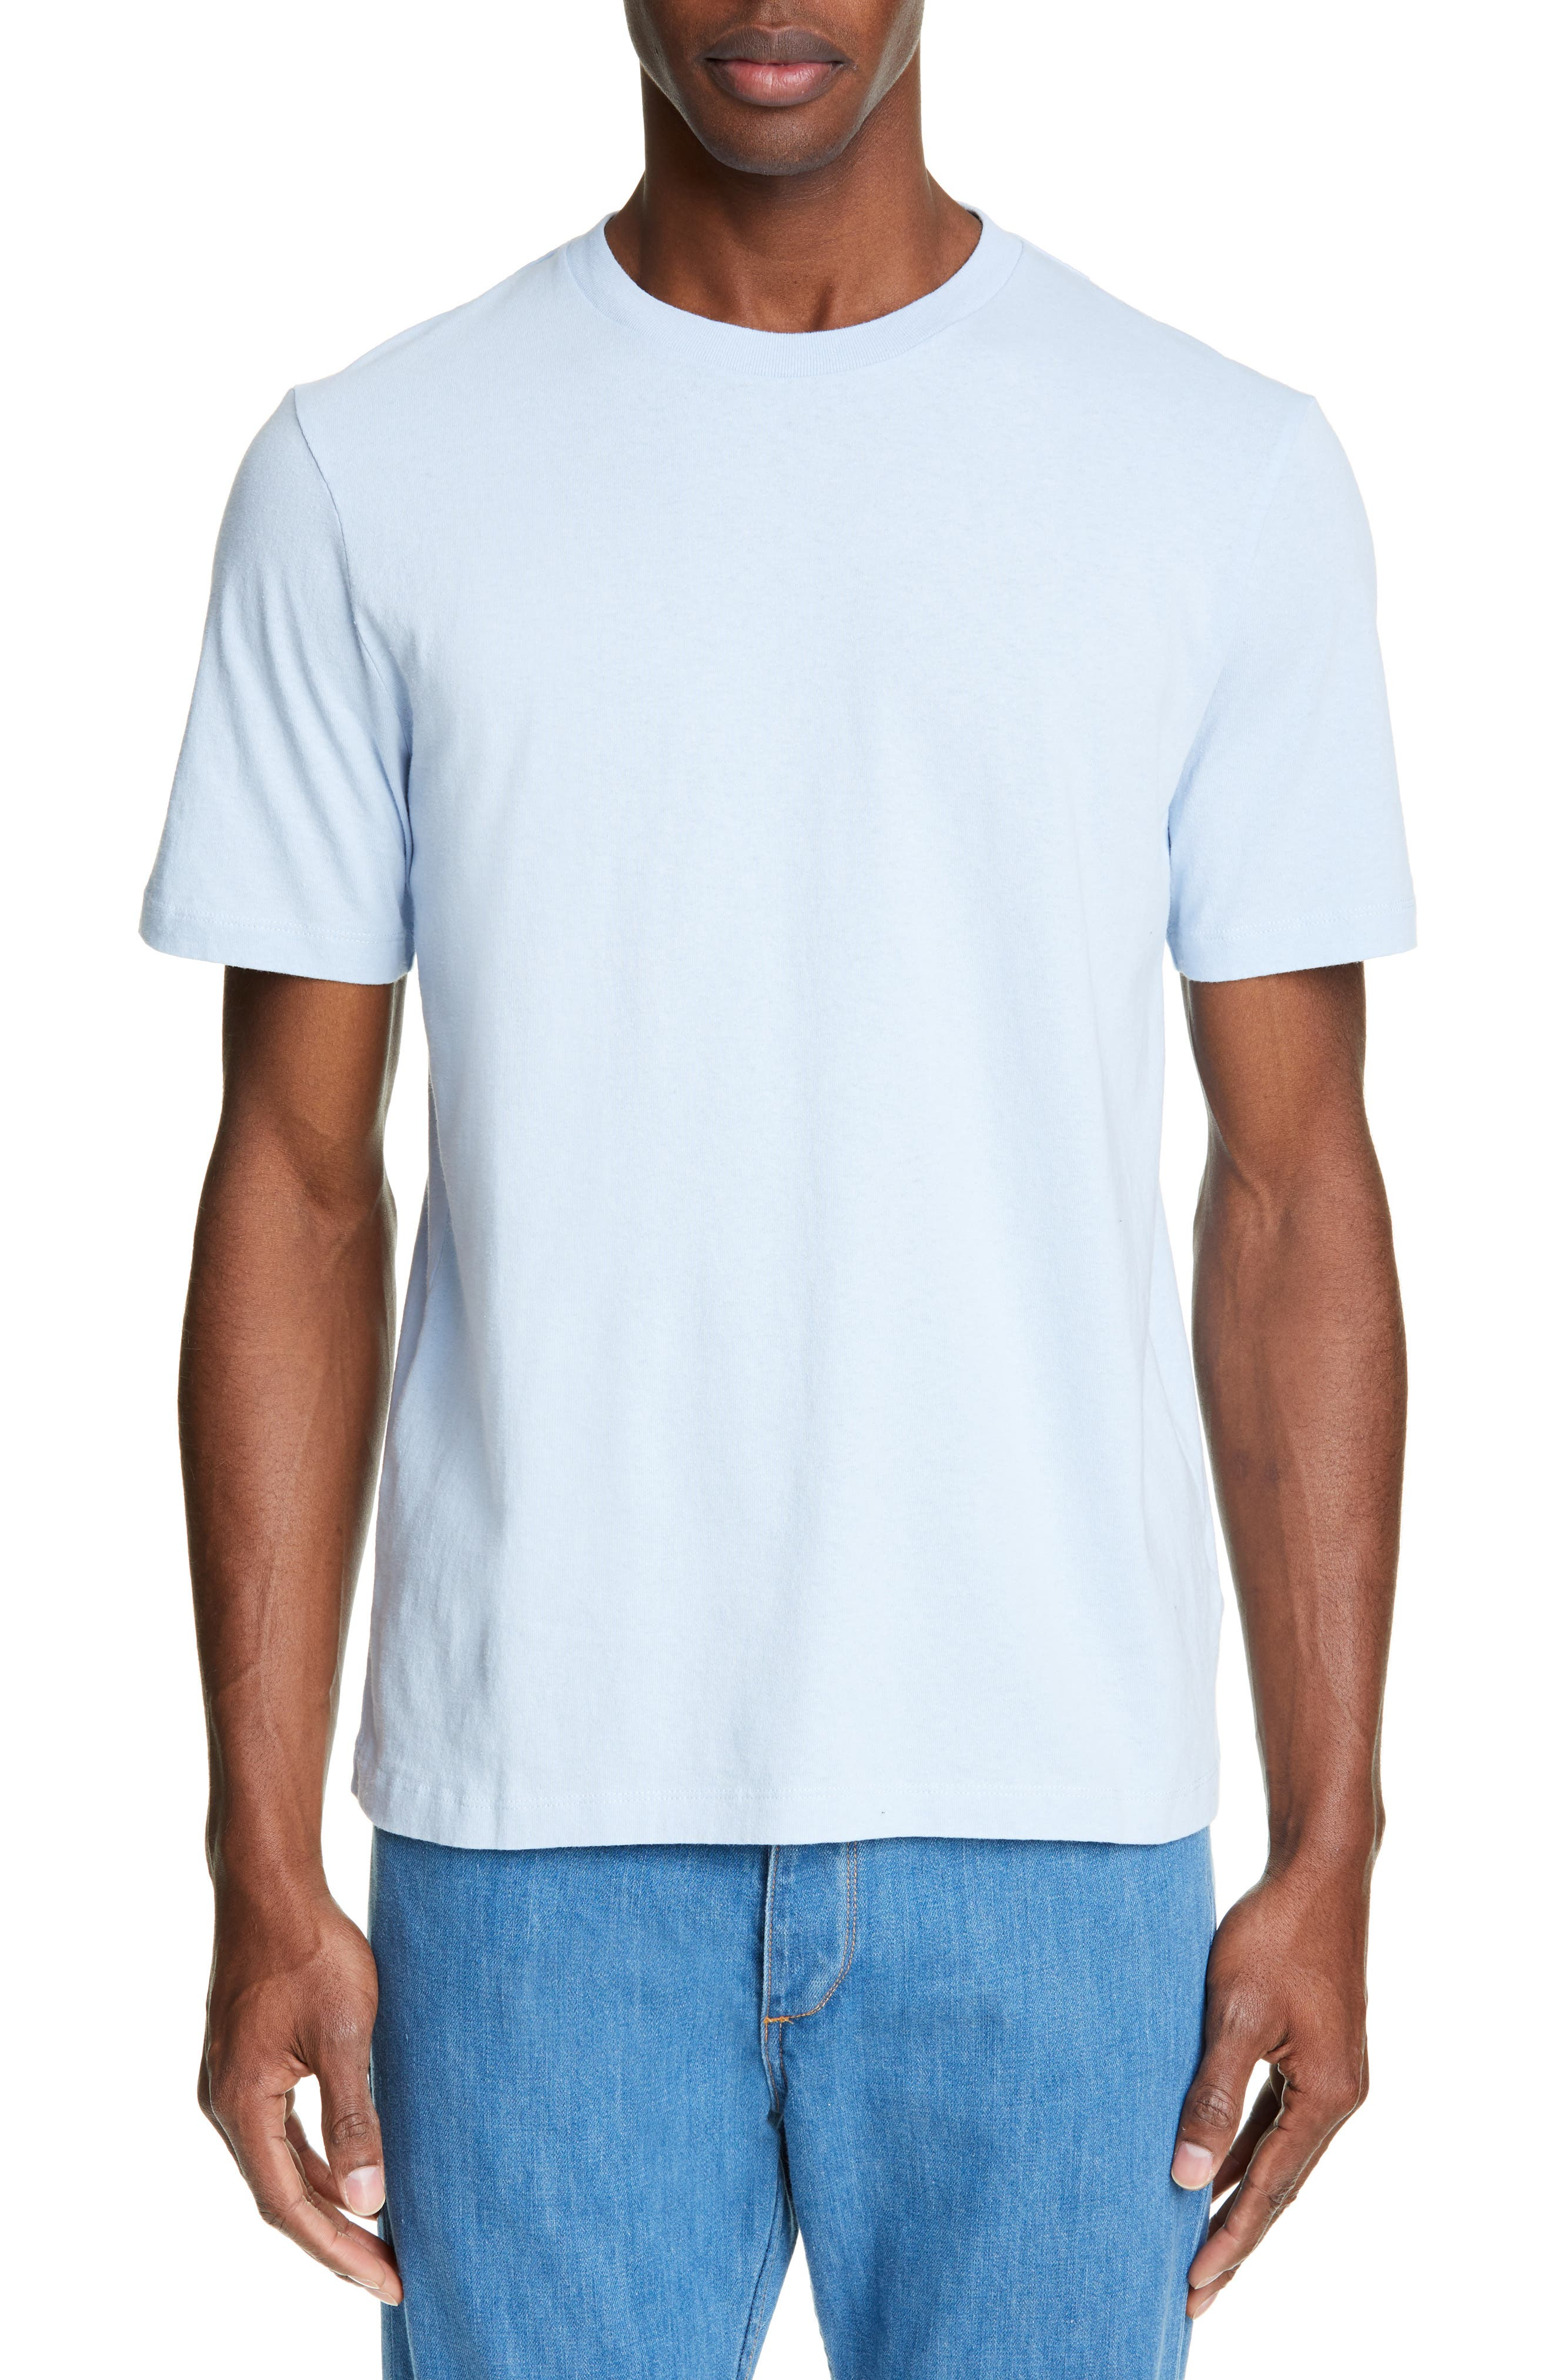 HELMUT LANG, Aviator T-Shirt, Main thumbnail 1, color, SKY